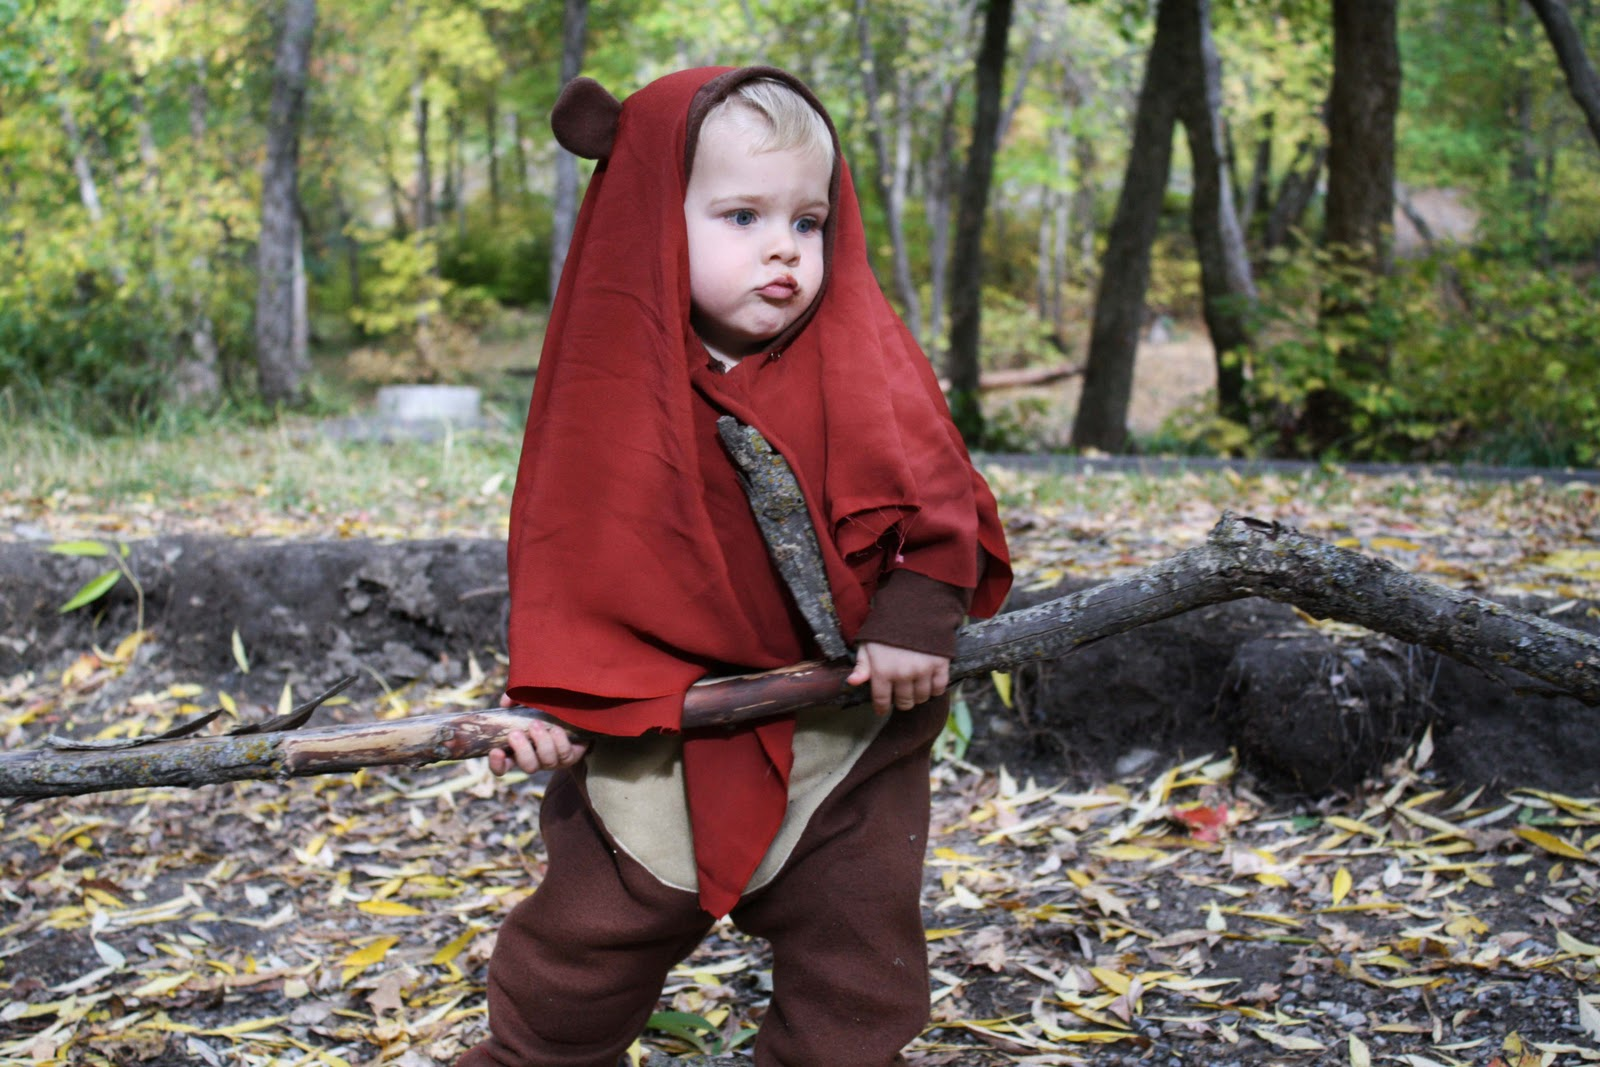 running with scissors halloween costume ewok. Black Bedroom Furniture Sets. Home Design Ideas